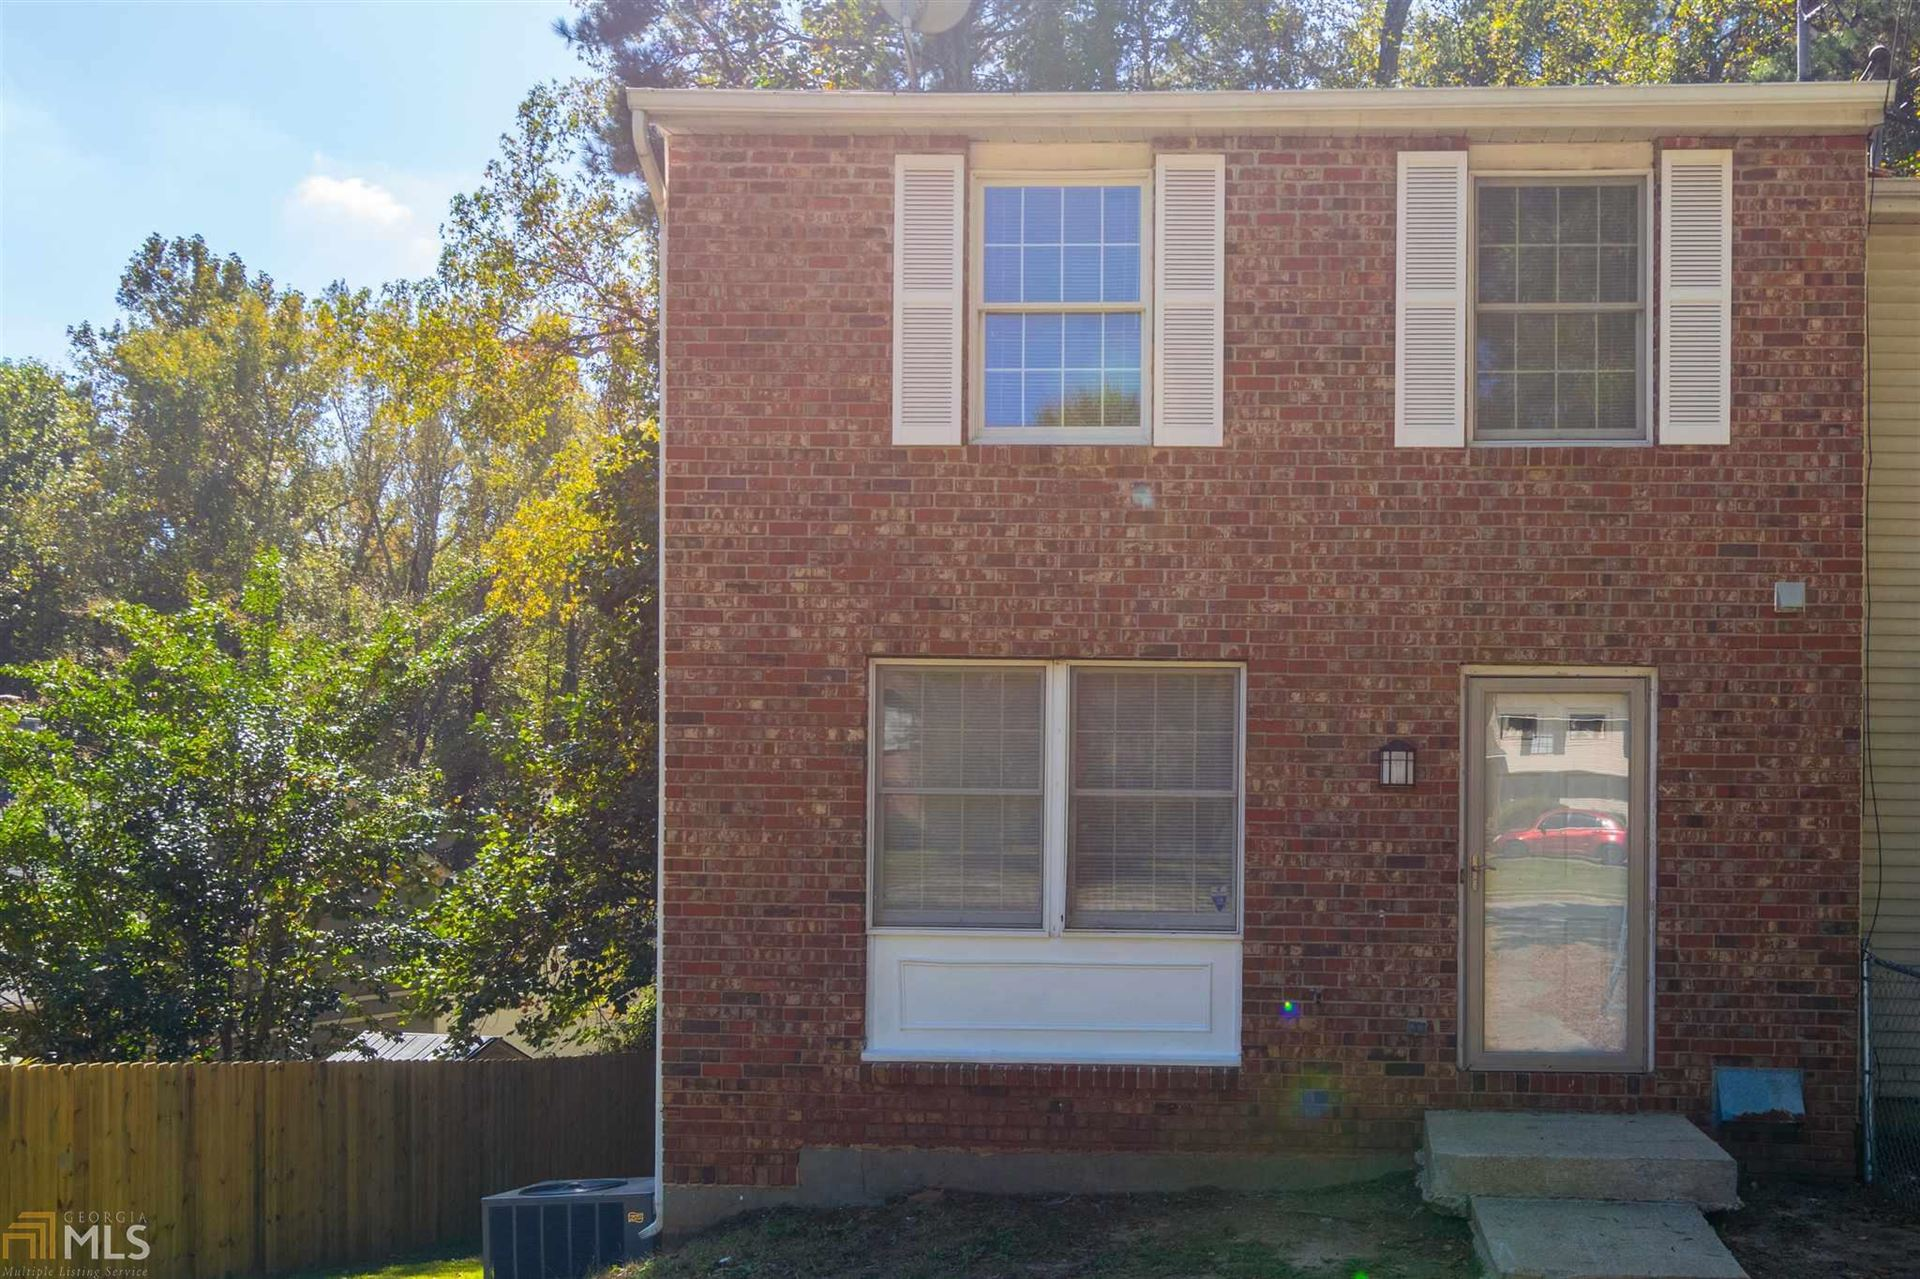 5599 Marbut Rd, Lithonia, GA 30058 - MLS#: 8873575